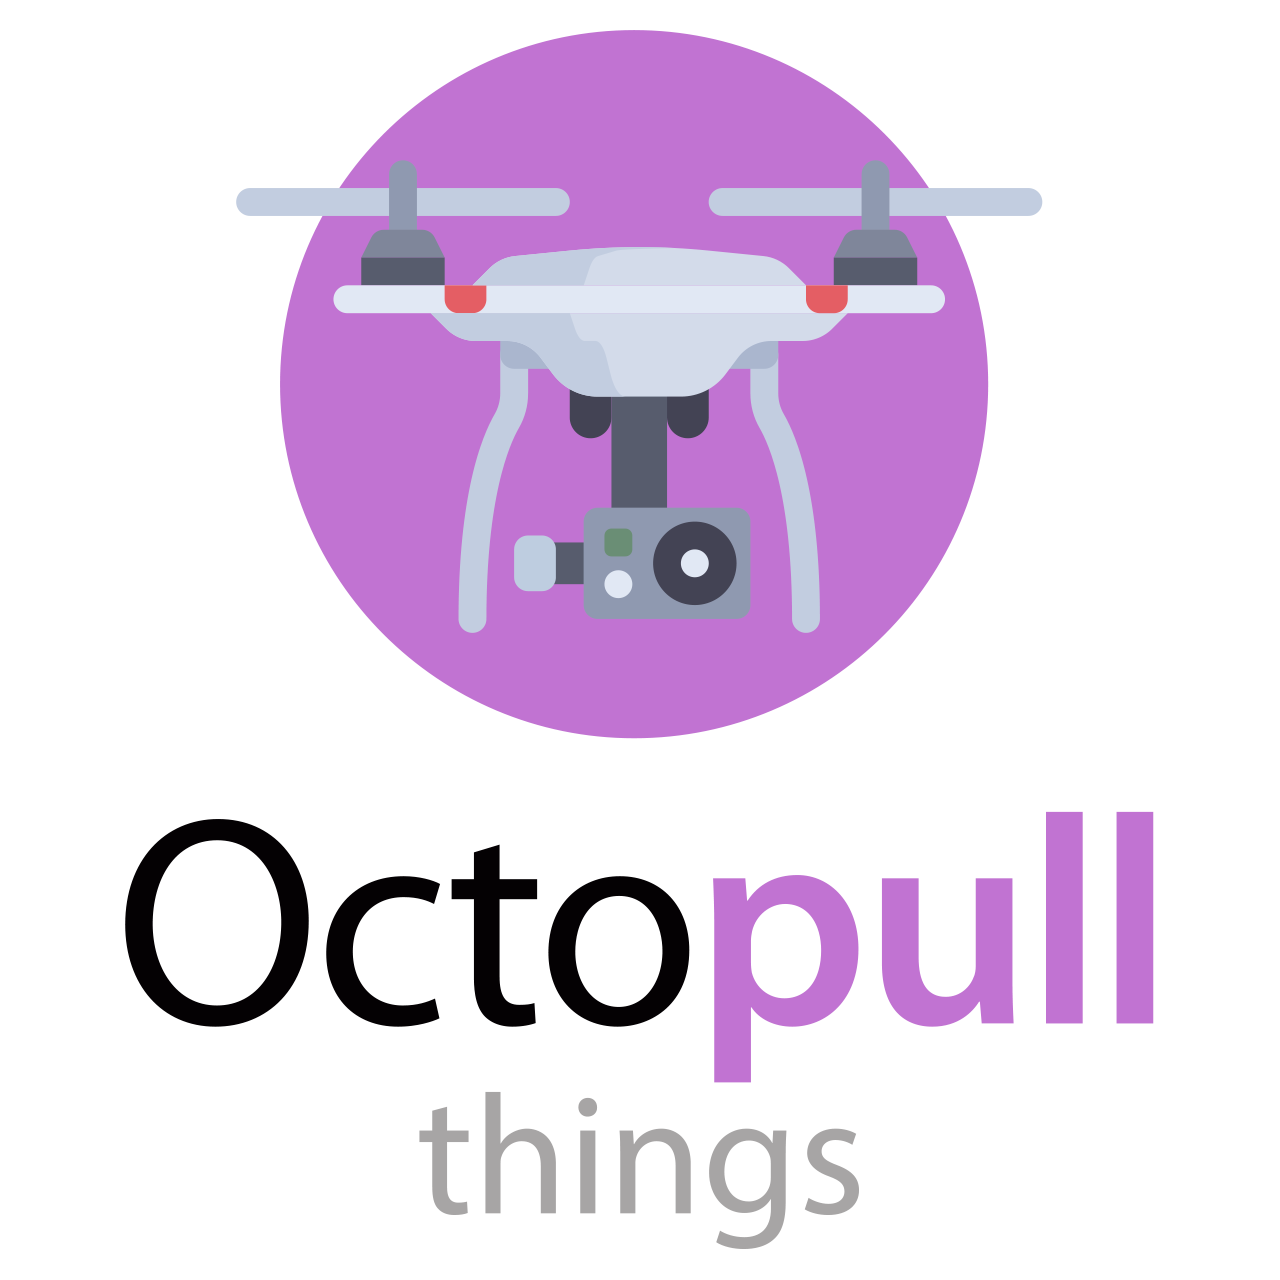 logo-octopull-things.png